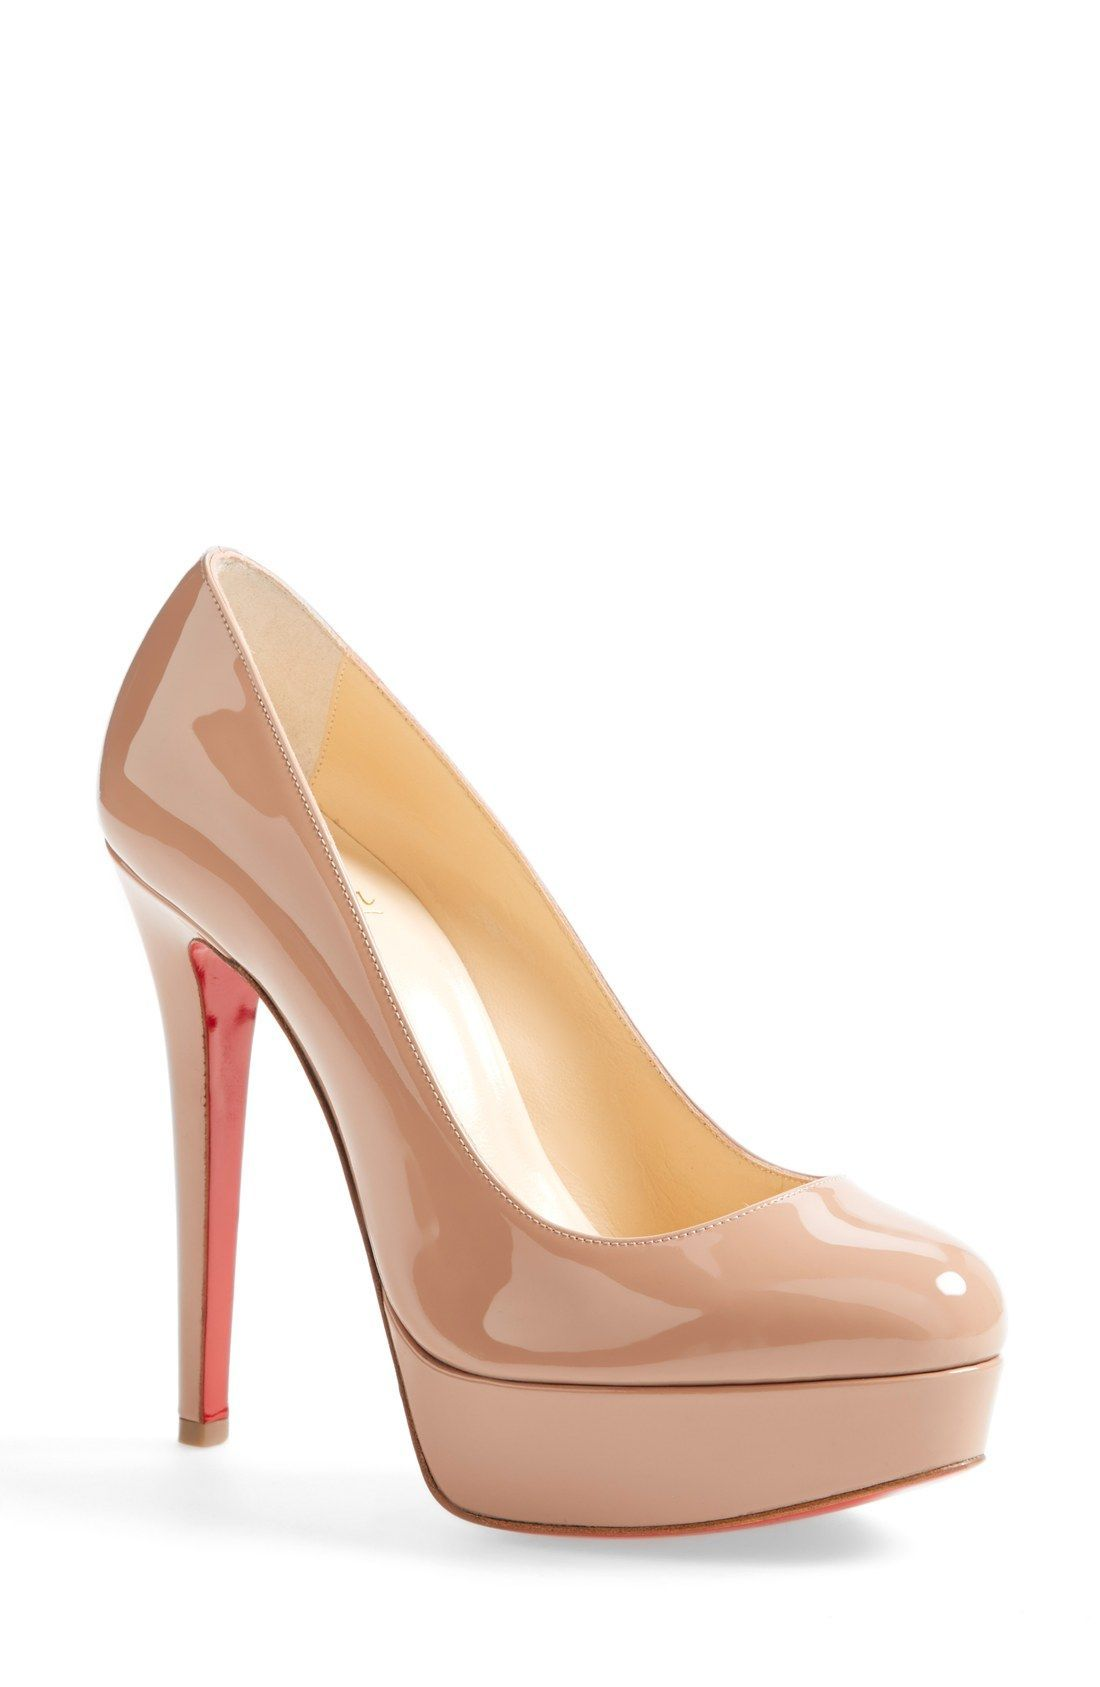 Louboutin Introduces New Shades Of Nude Pumps